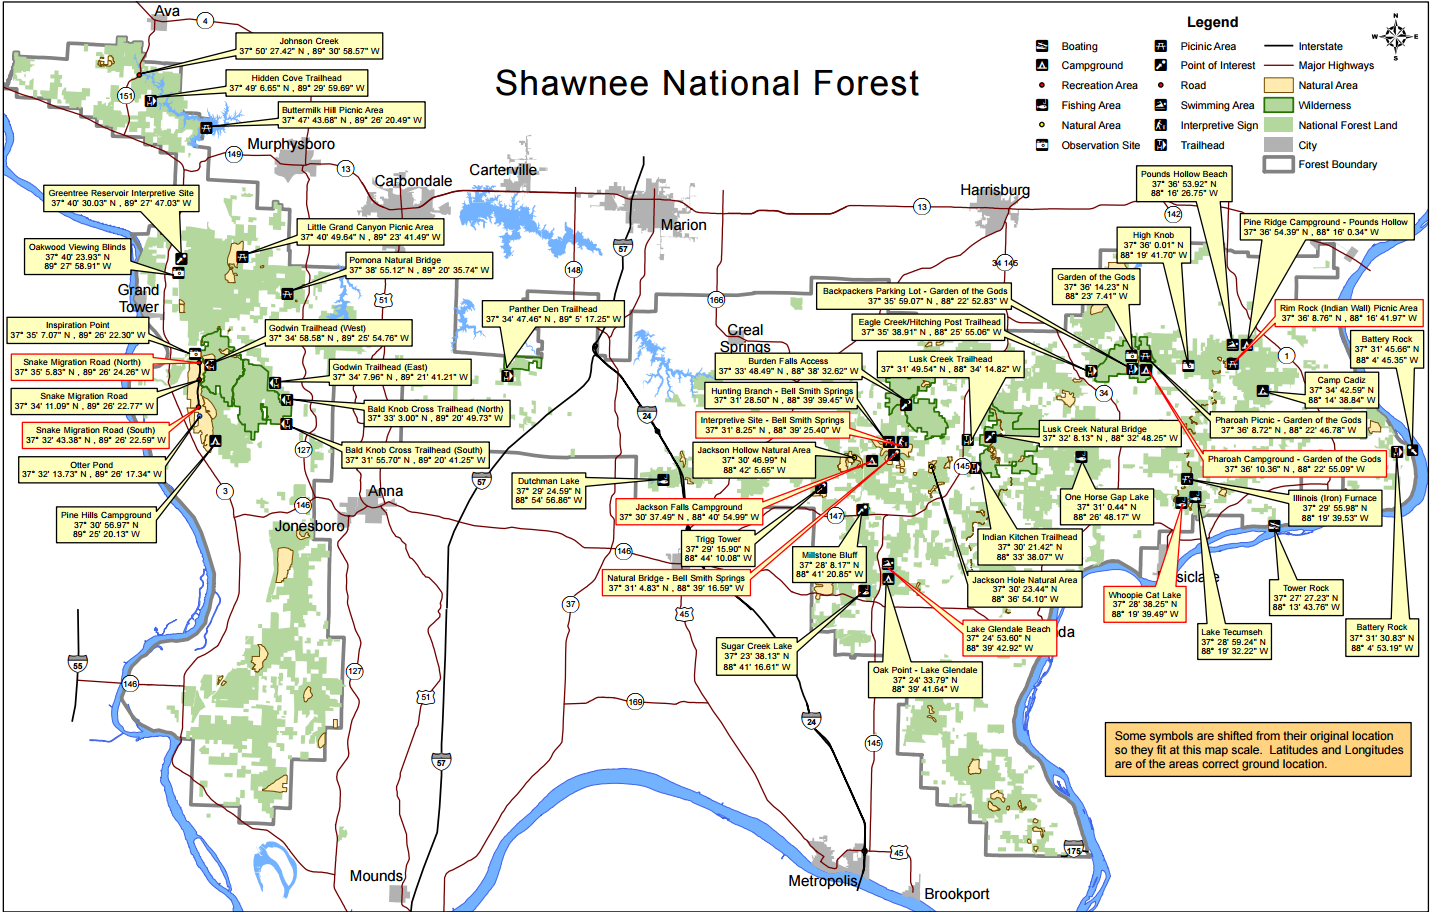 Shawnee National Forest, Map Shawnee national forest